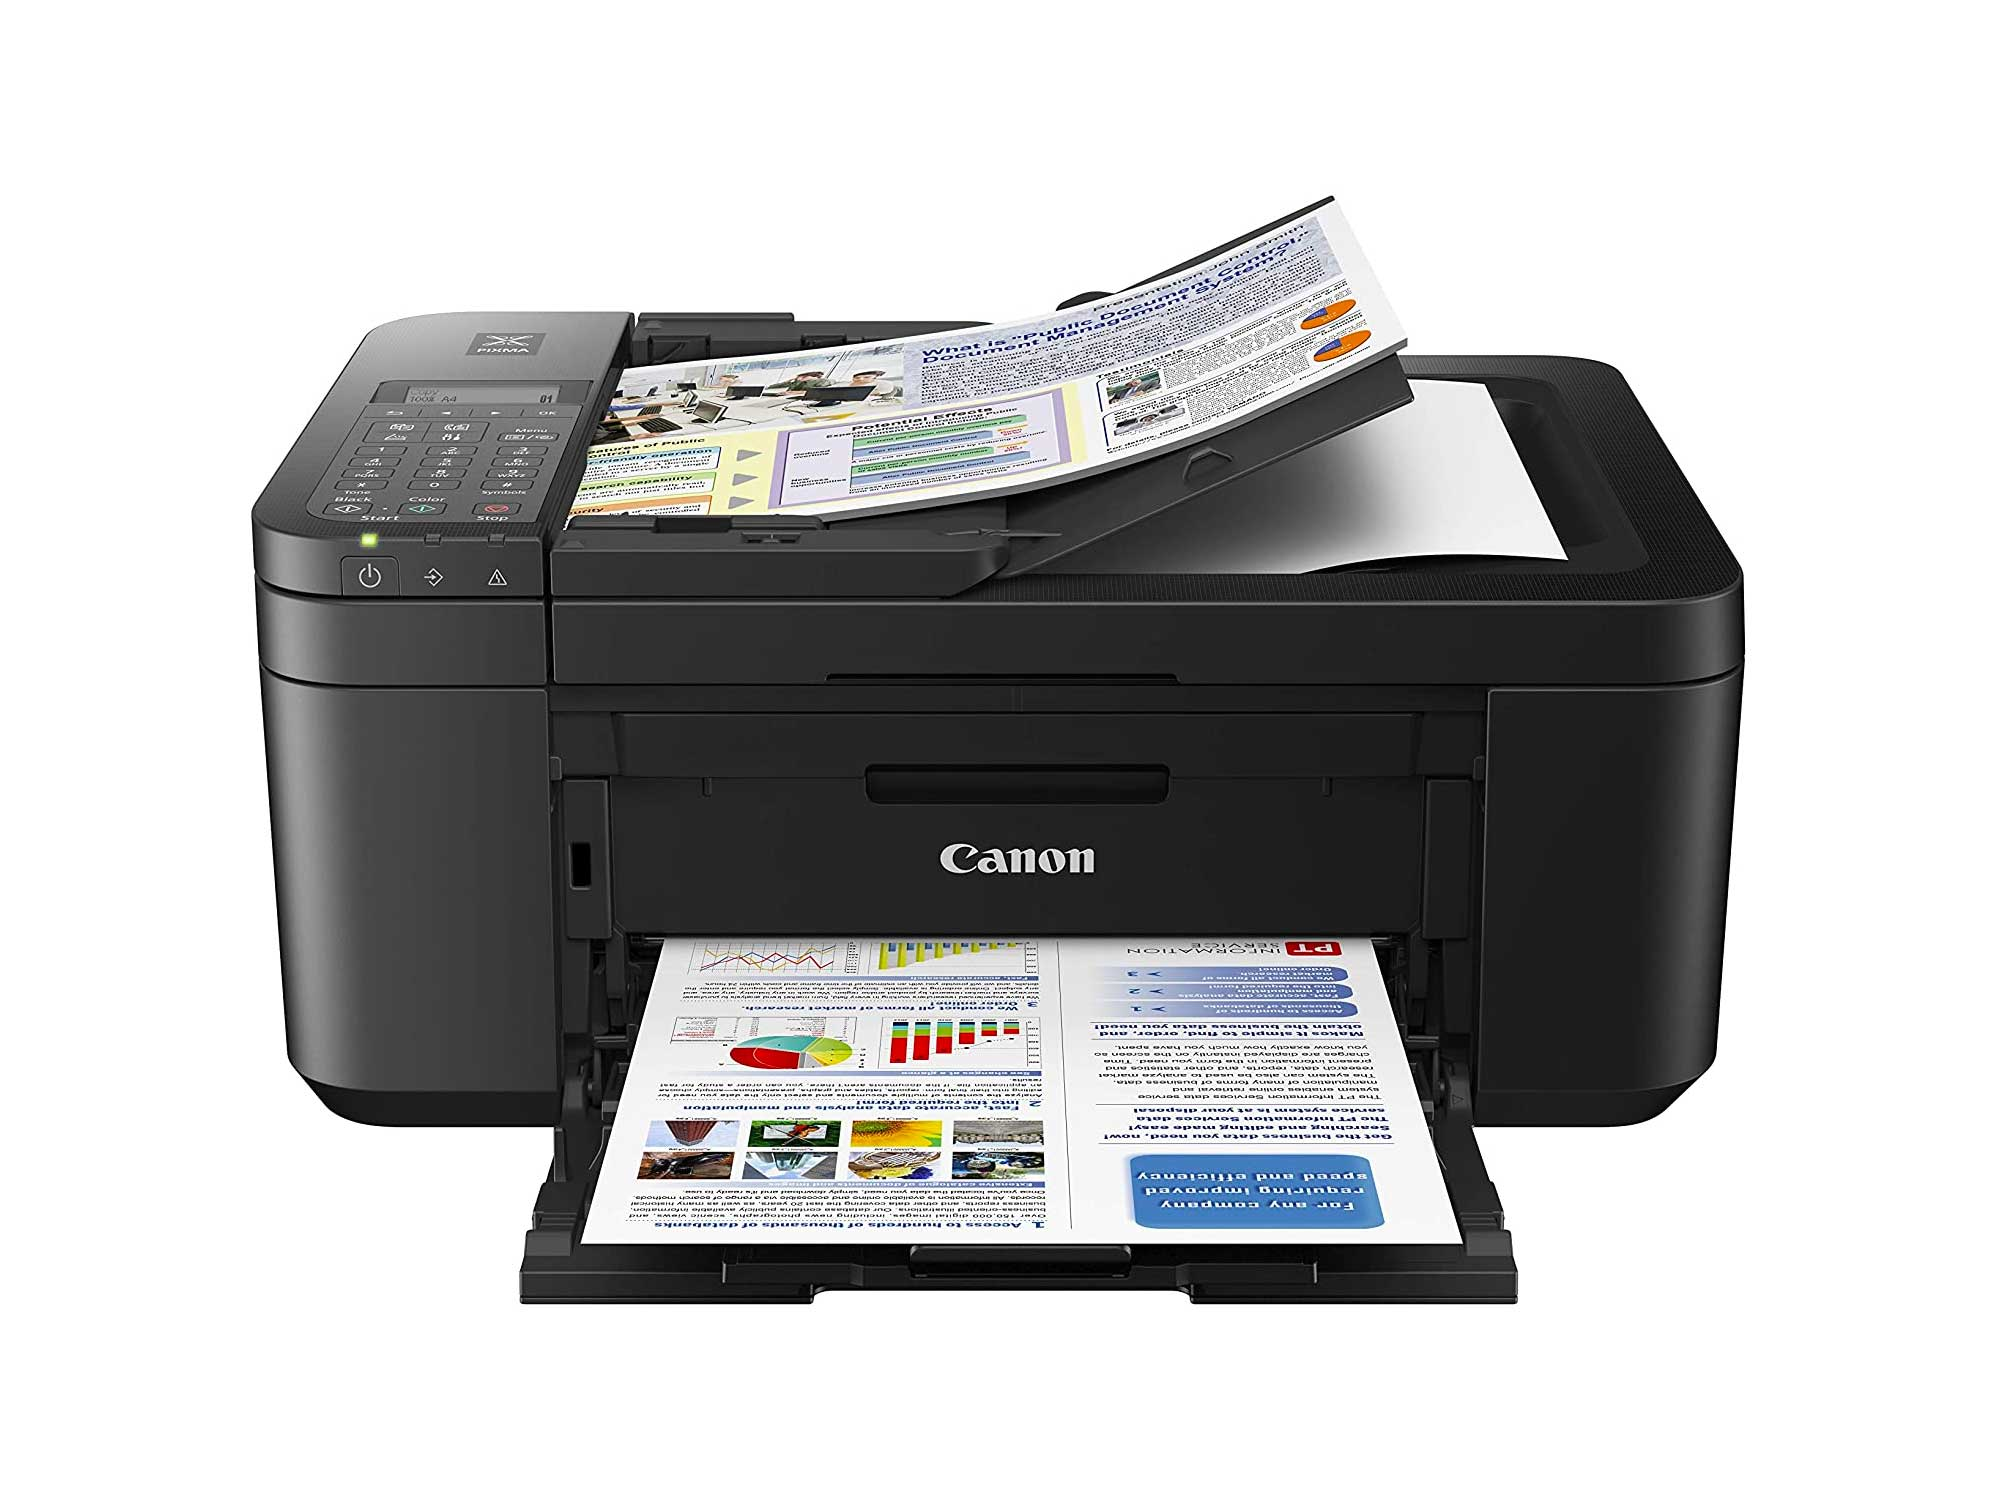 Canon PIXMA Wireless All in One Photo Printer with Mobile Printing, Black